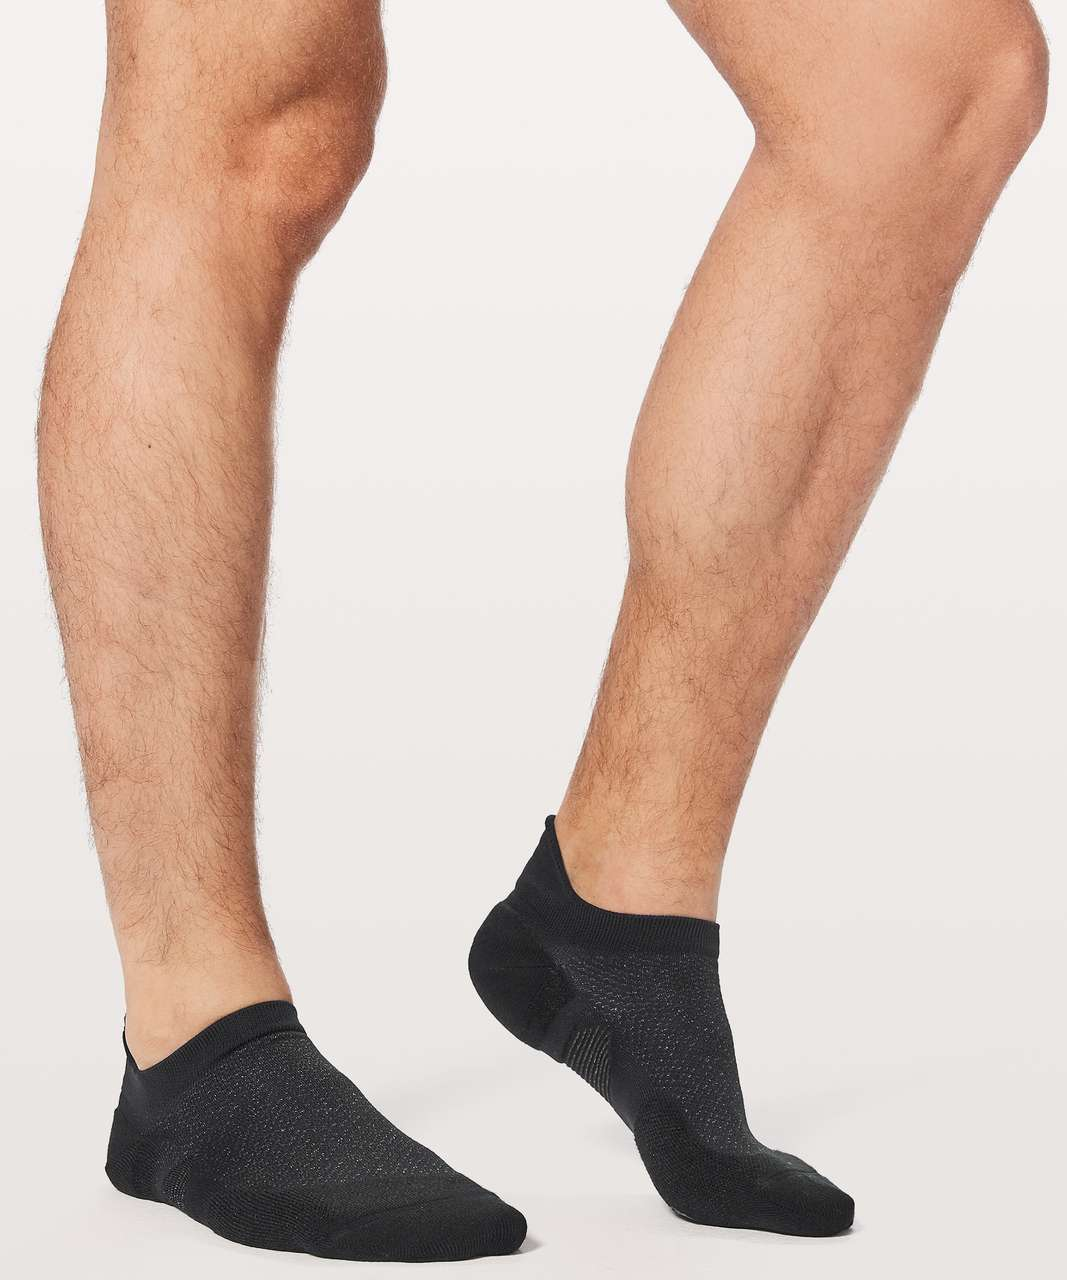 Lululemon T.H.E. Sock *Silver - Black